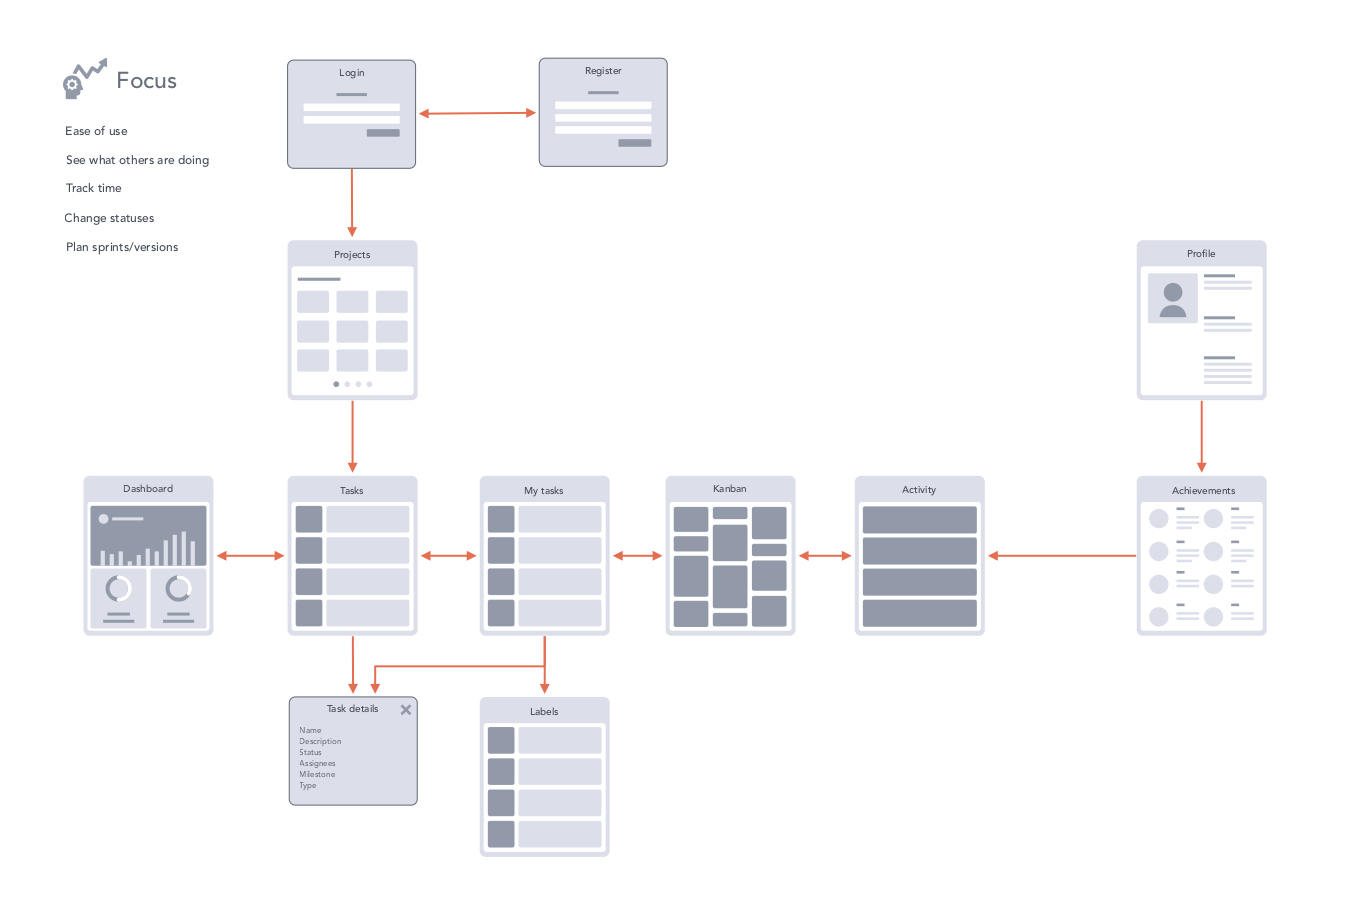 vermiform appendix and data flow diagram Get a head start on creating your data flow diagrams with these dfd examples  and templates use lucidchart for all your dfd needs.